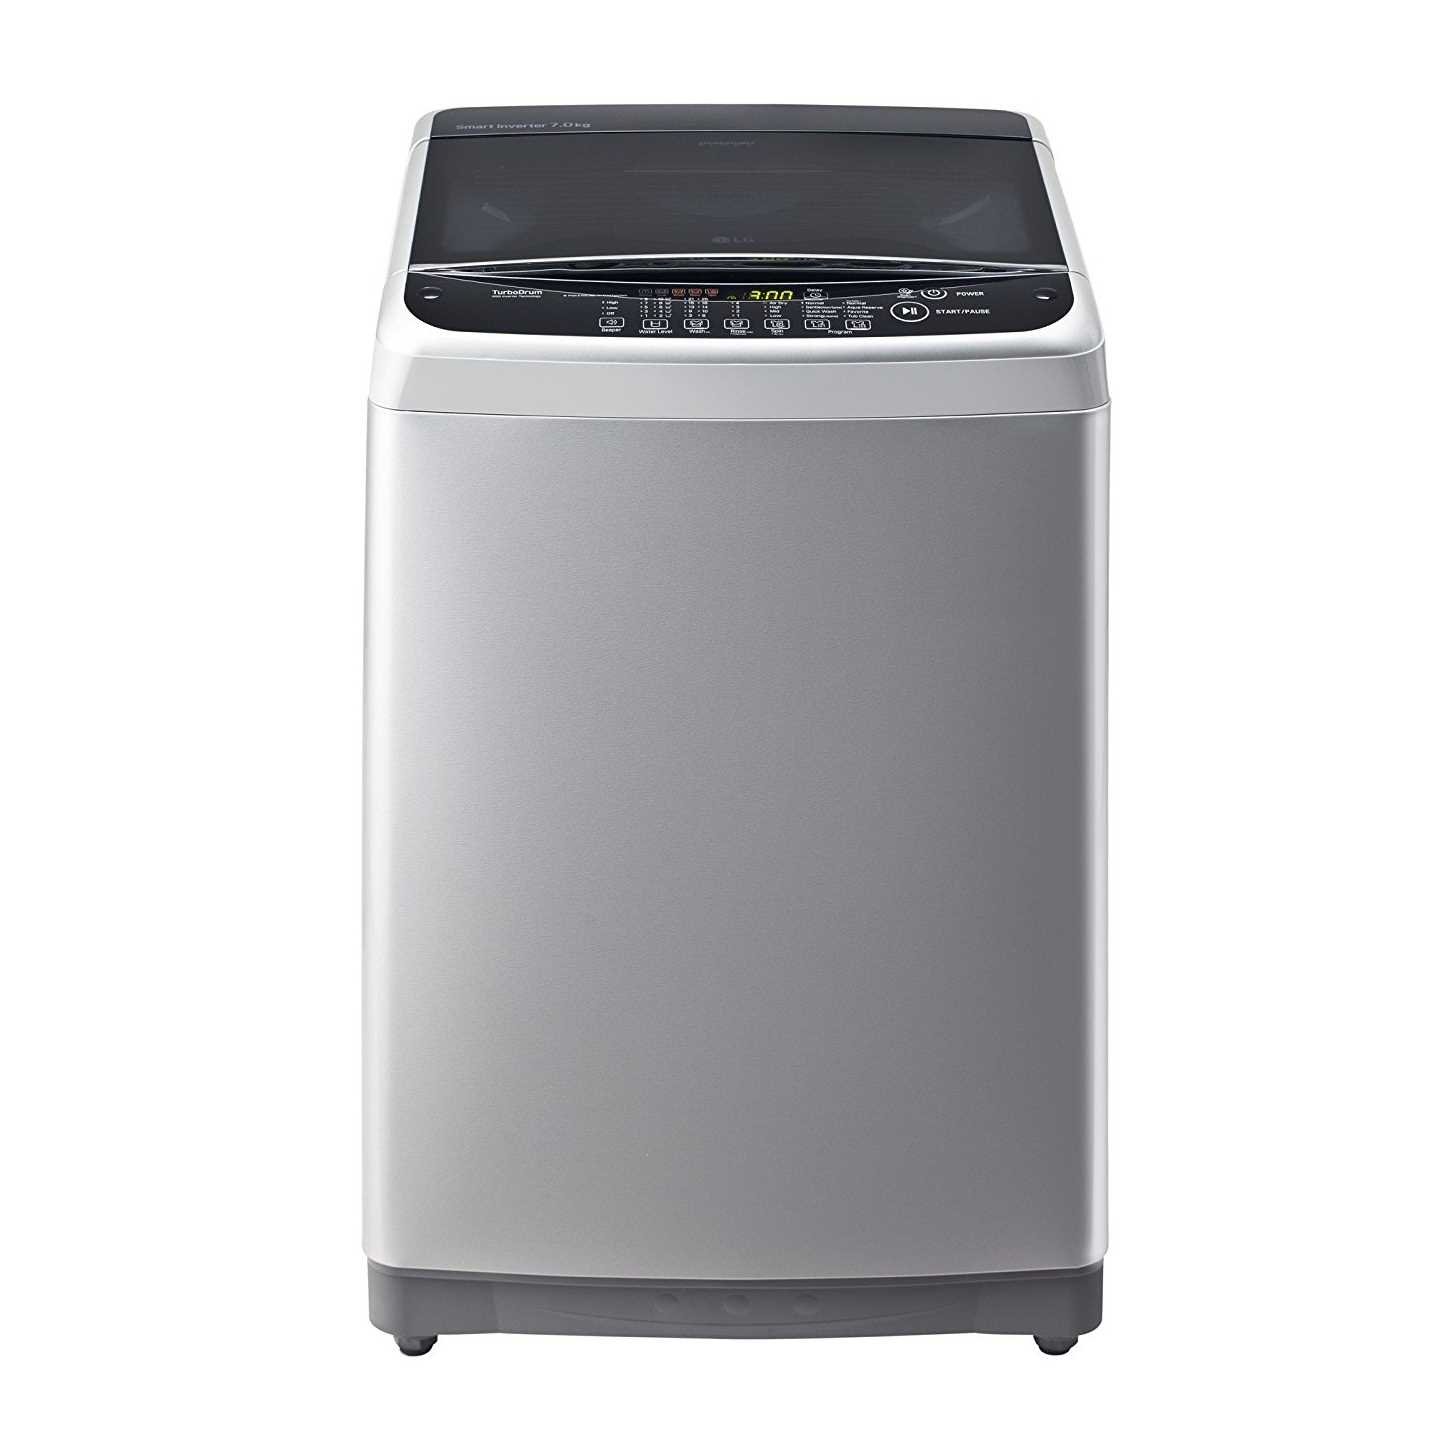 LG T8081NEDL1 7 Kg Fully Automatic Top Loading Washing Machine